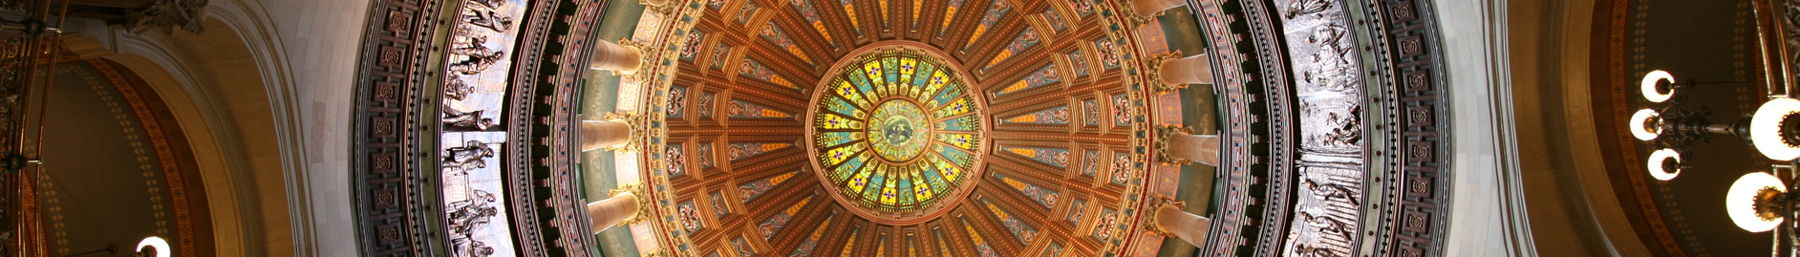 Illinois State Capitol dome banner.jpg